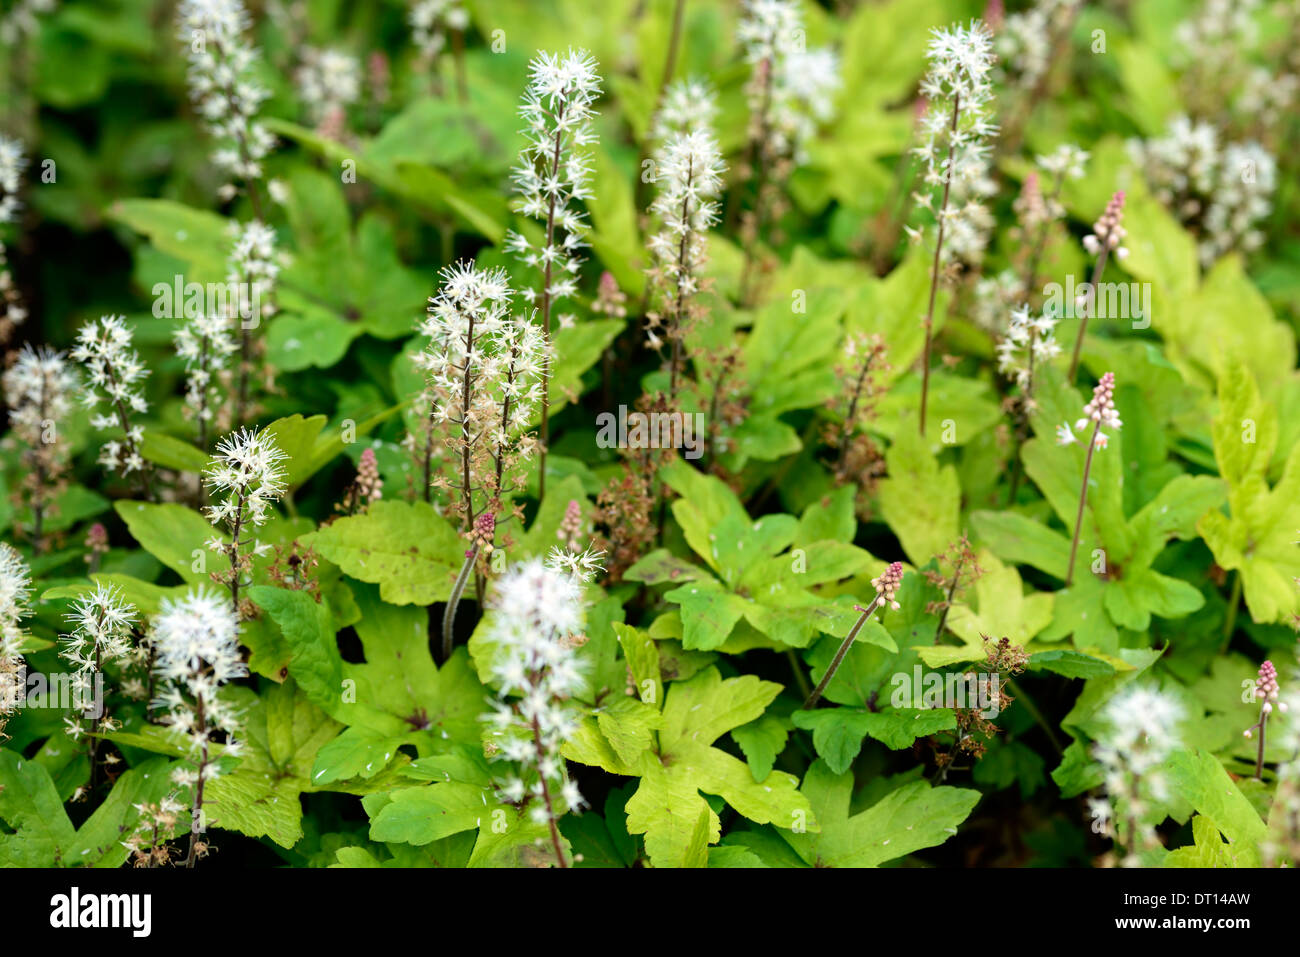 Tiarella spring symphony flowering ground cover shade garden plant tiarella spring symphony flowering ground cover shade garden plant flower foamflower perennial white blooms blossoms flowers mightylinksfo